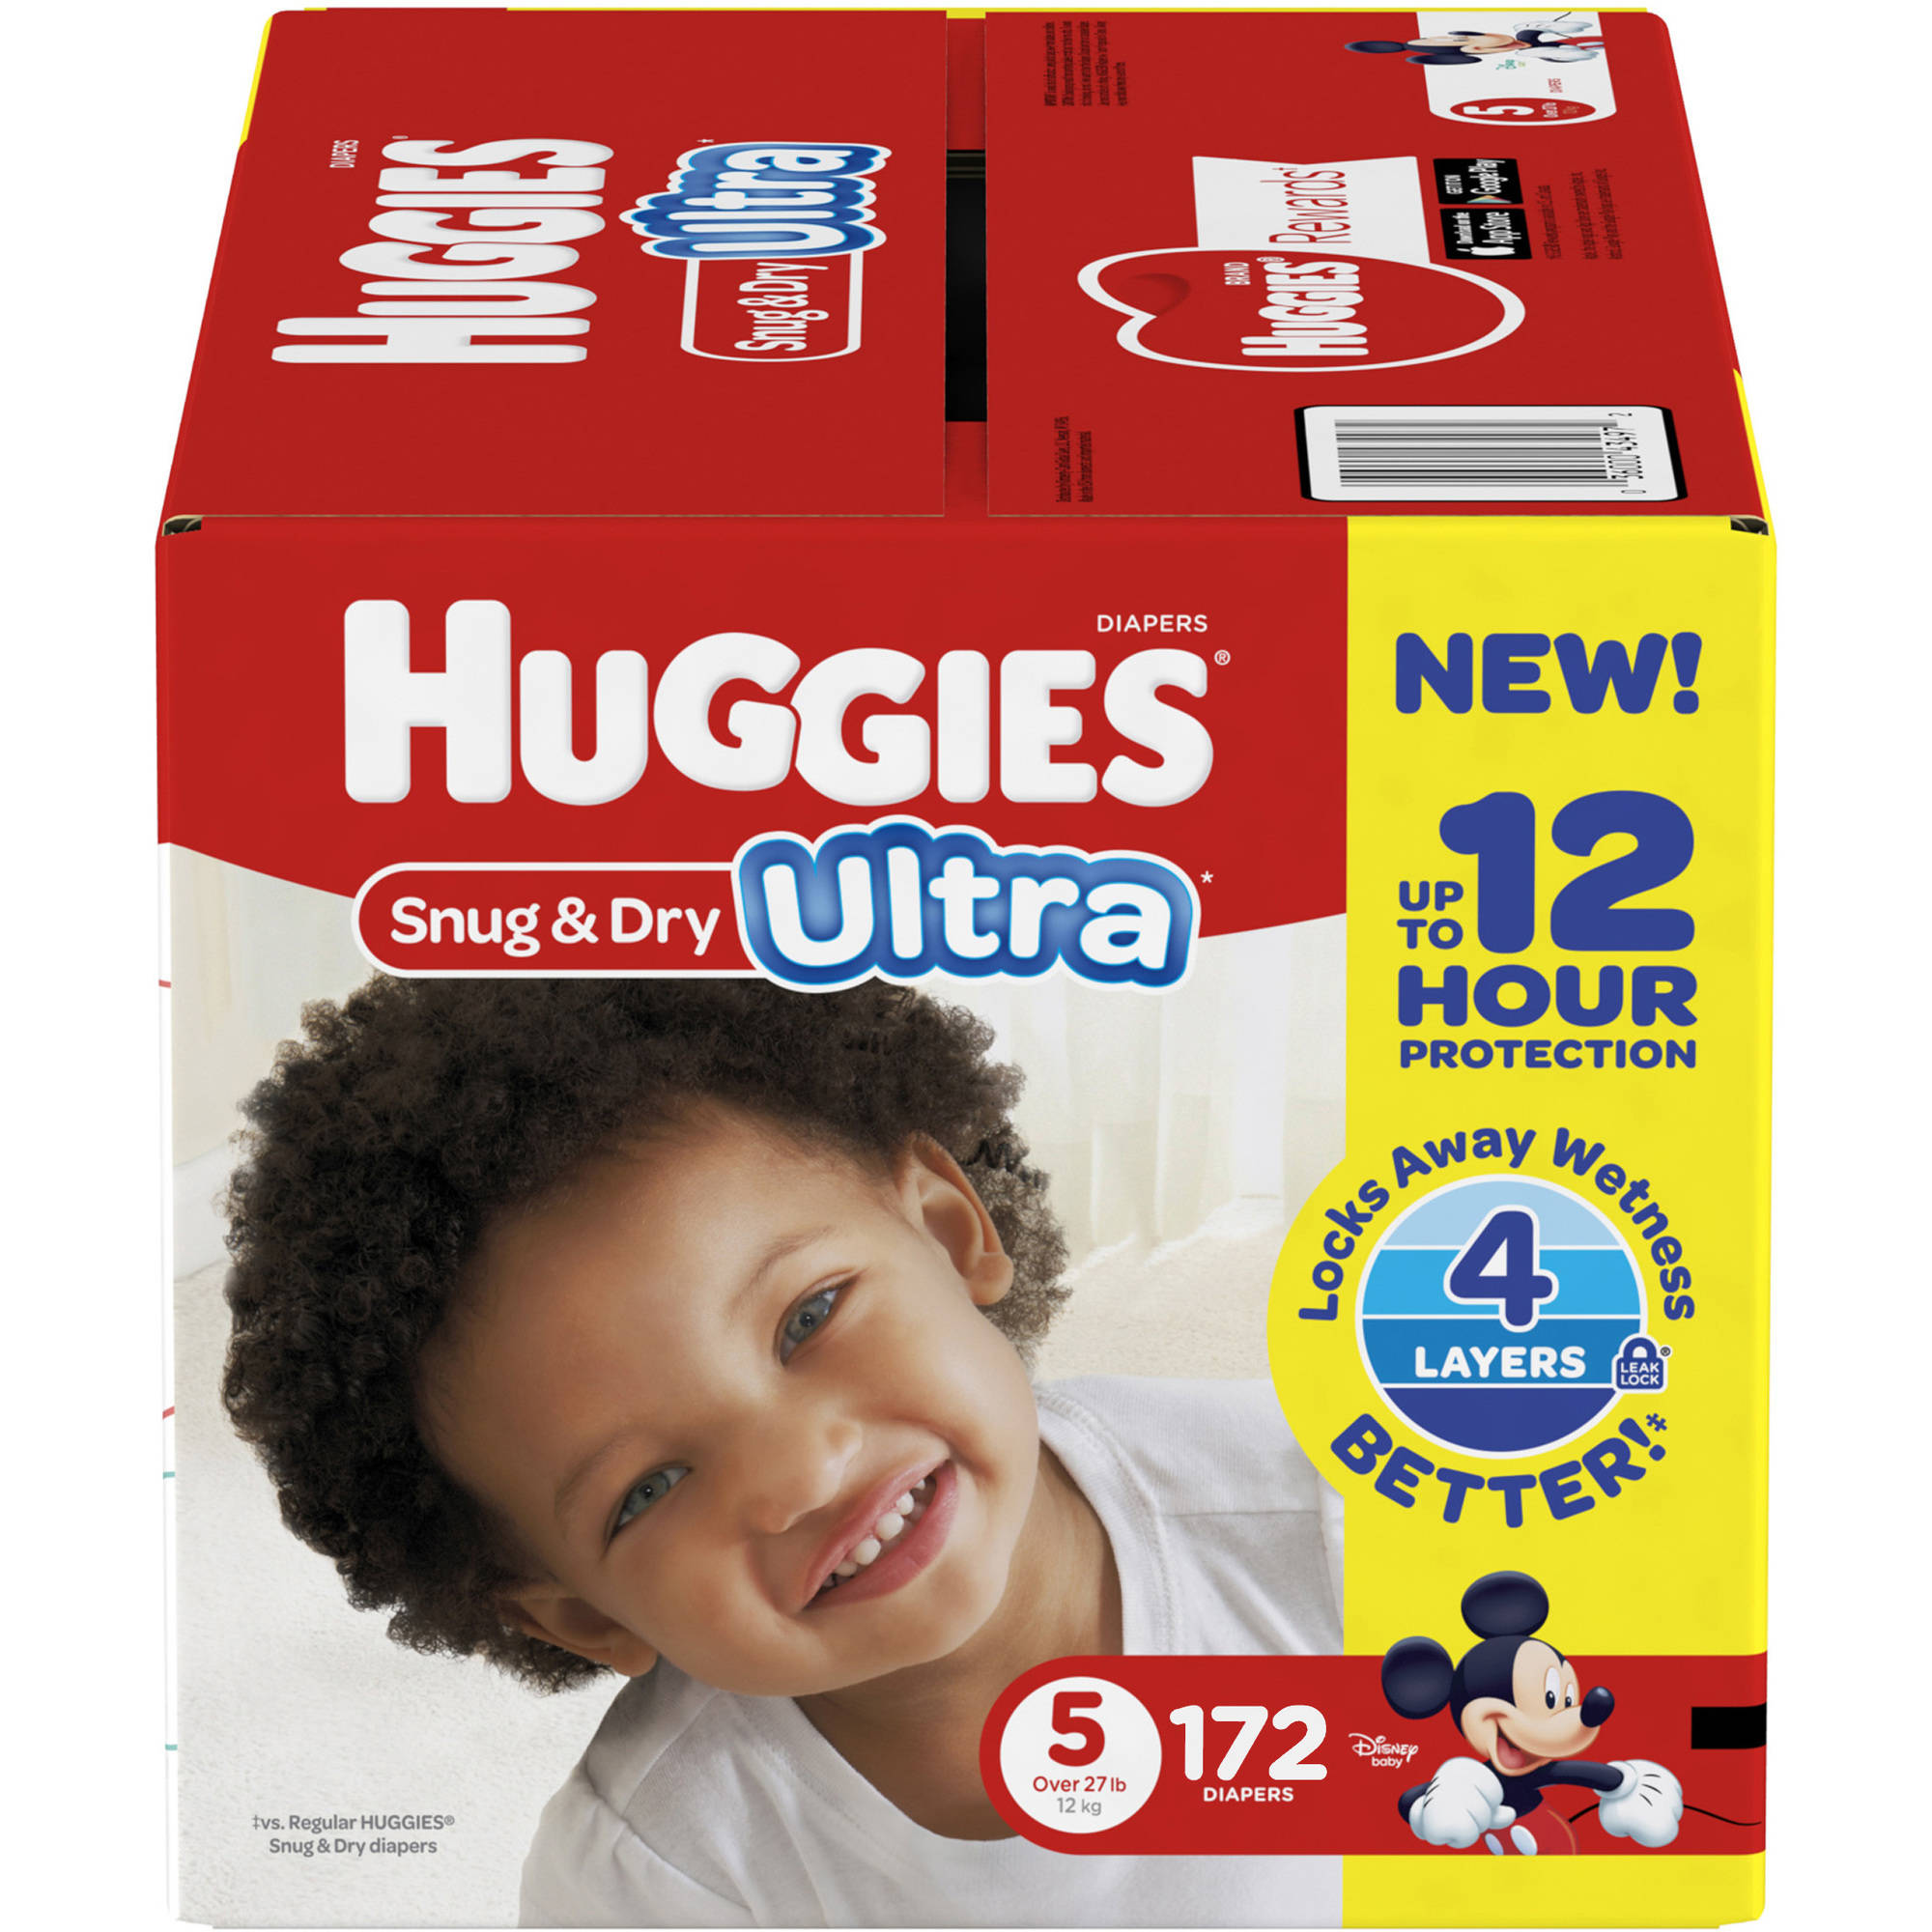 HUGGIES Snug & Dry Ultra Diapers, Size 5 (Choose Diaper Count)